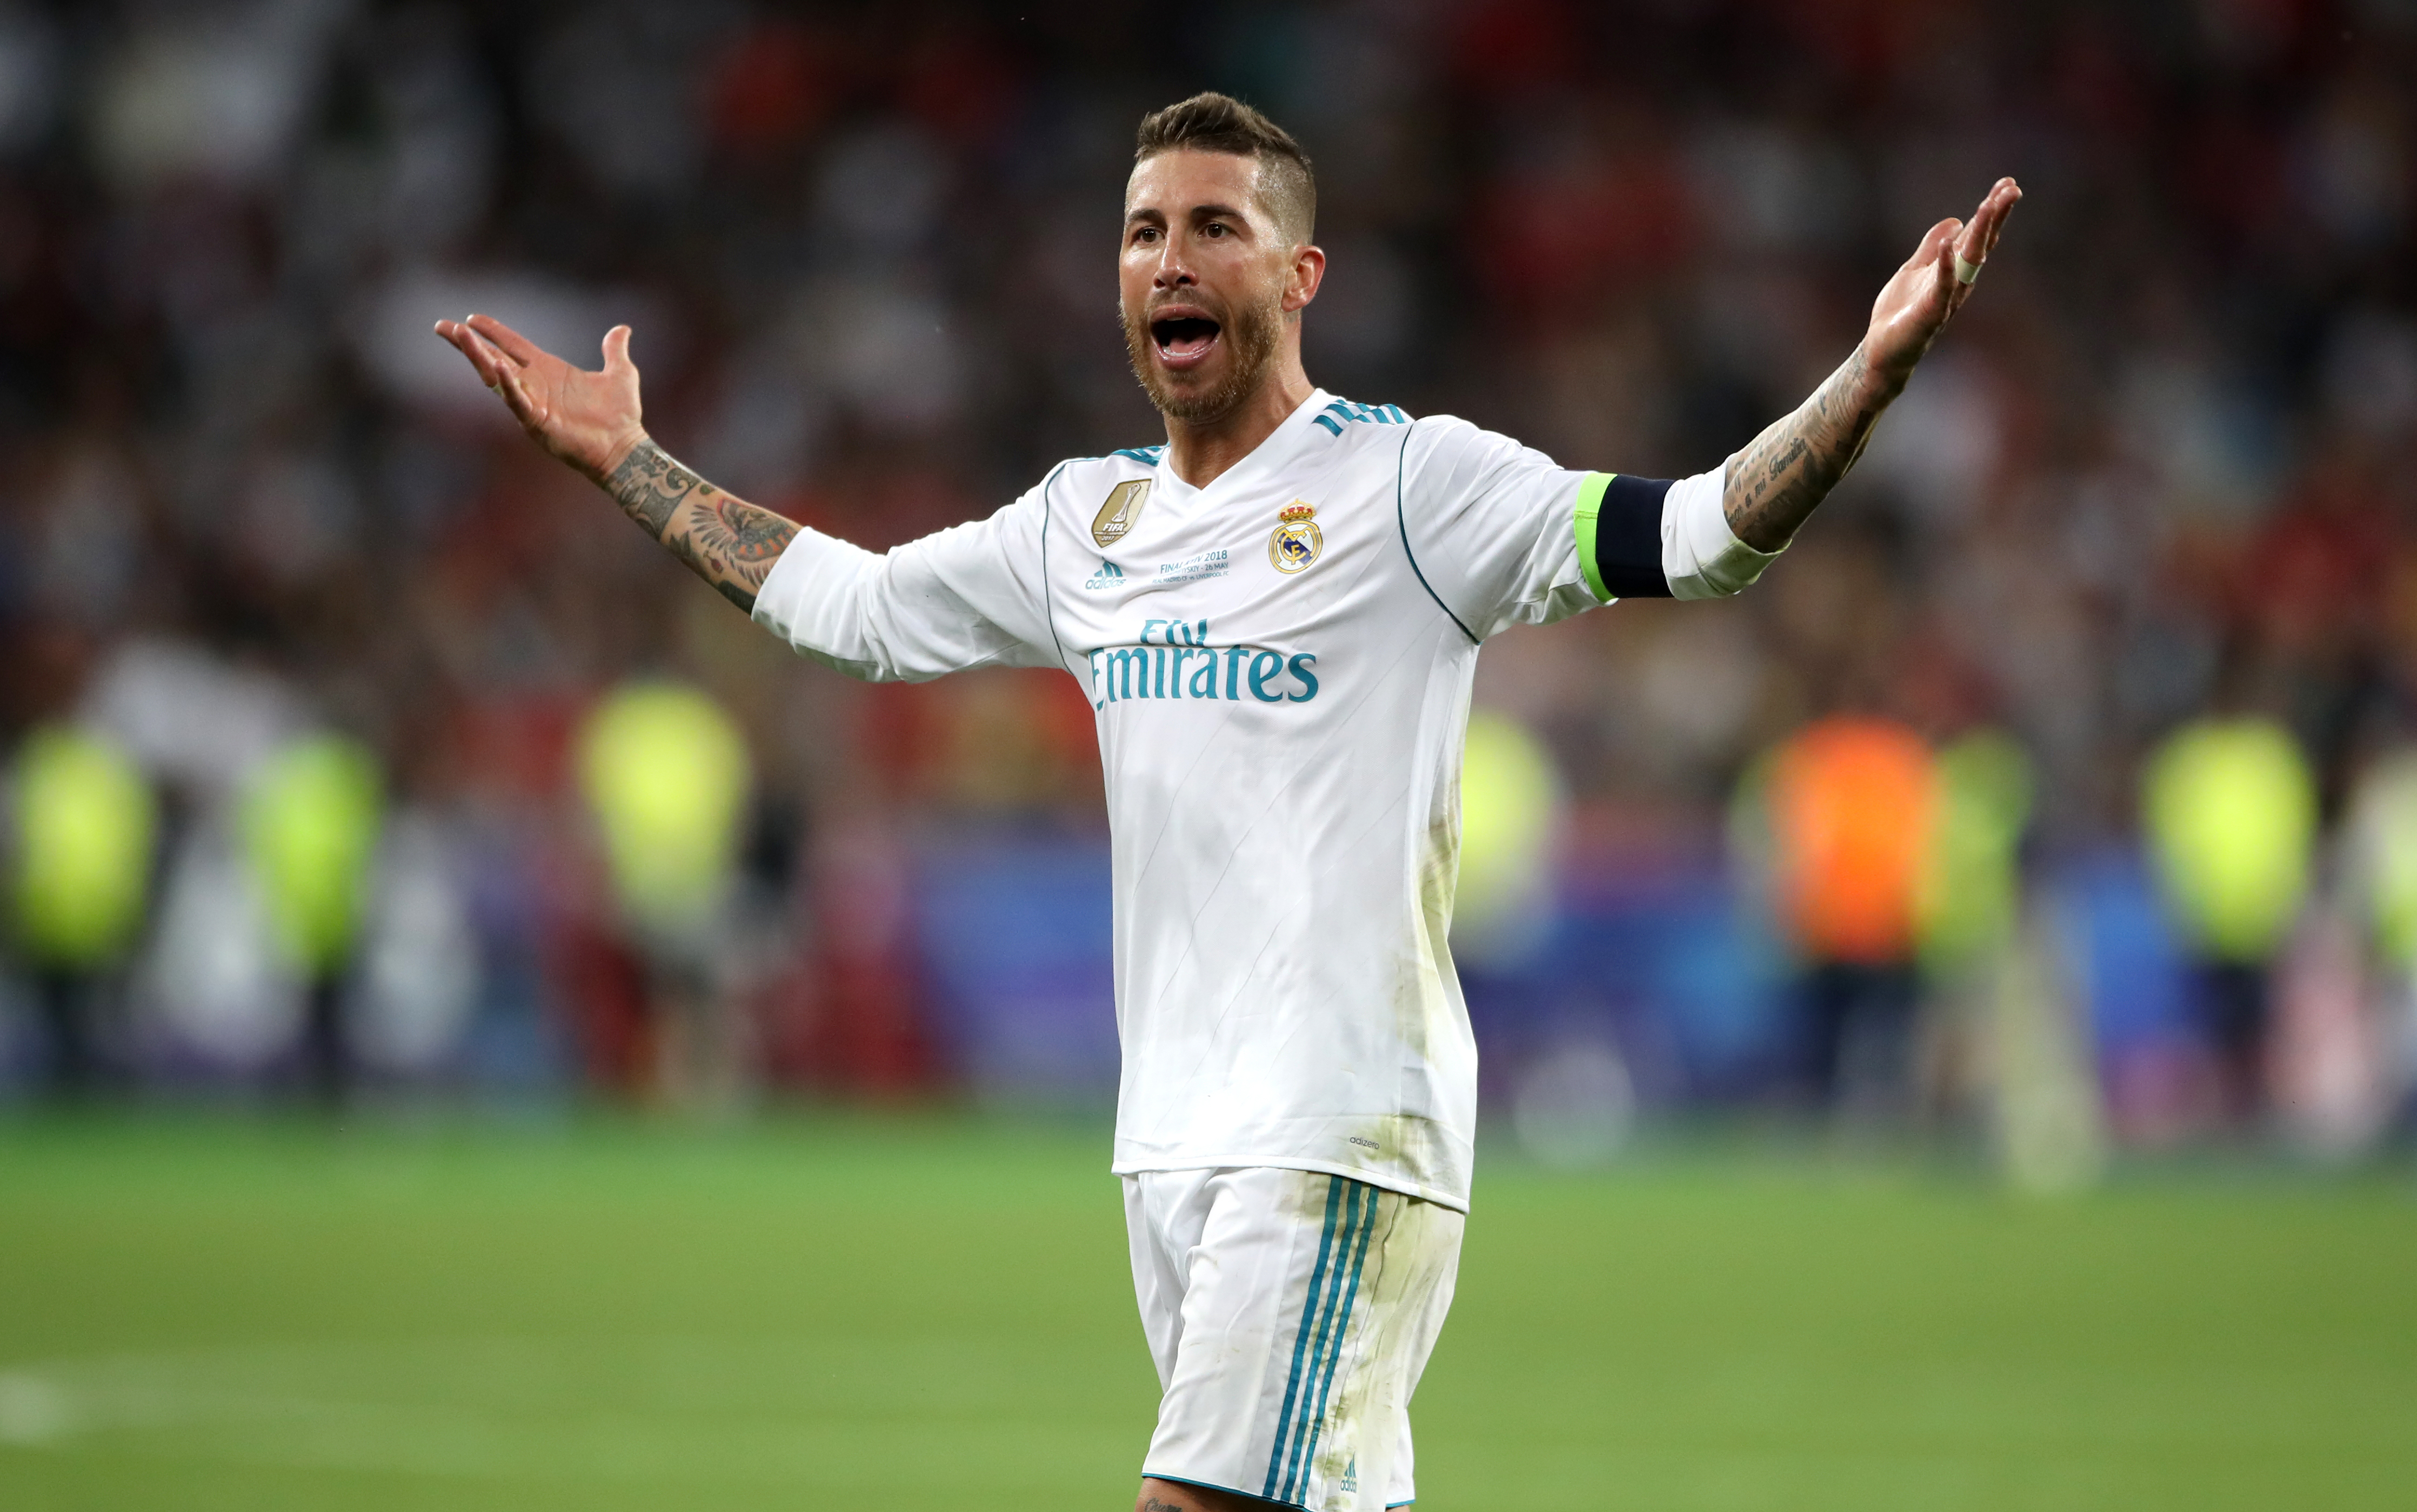 Real Madrid captain Sergio Ramos is suspended